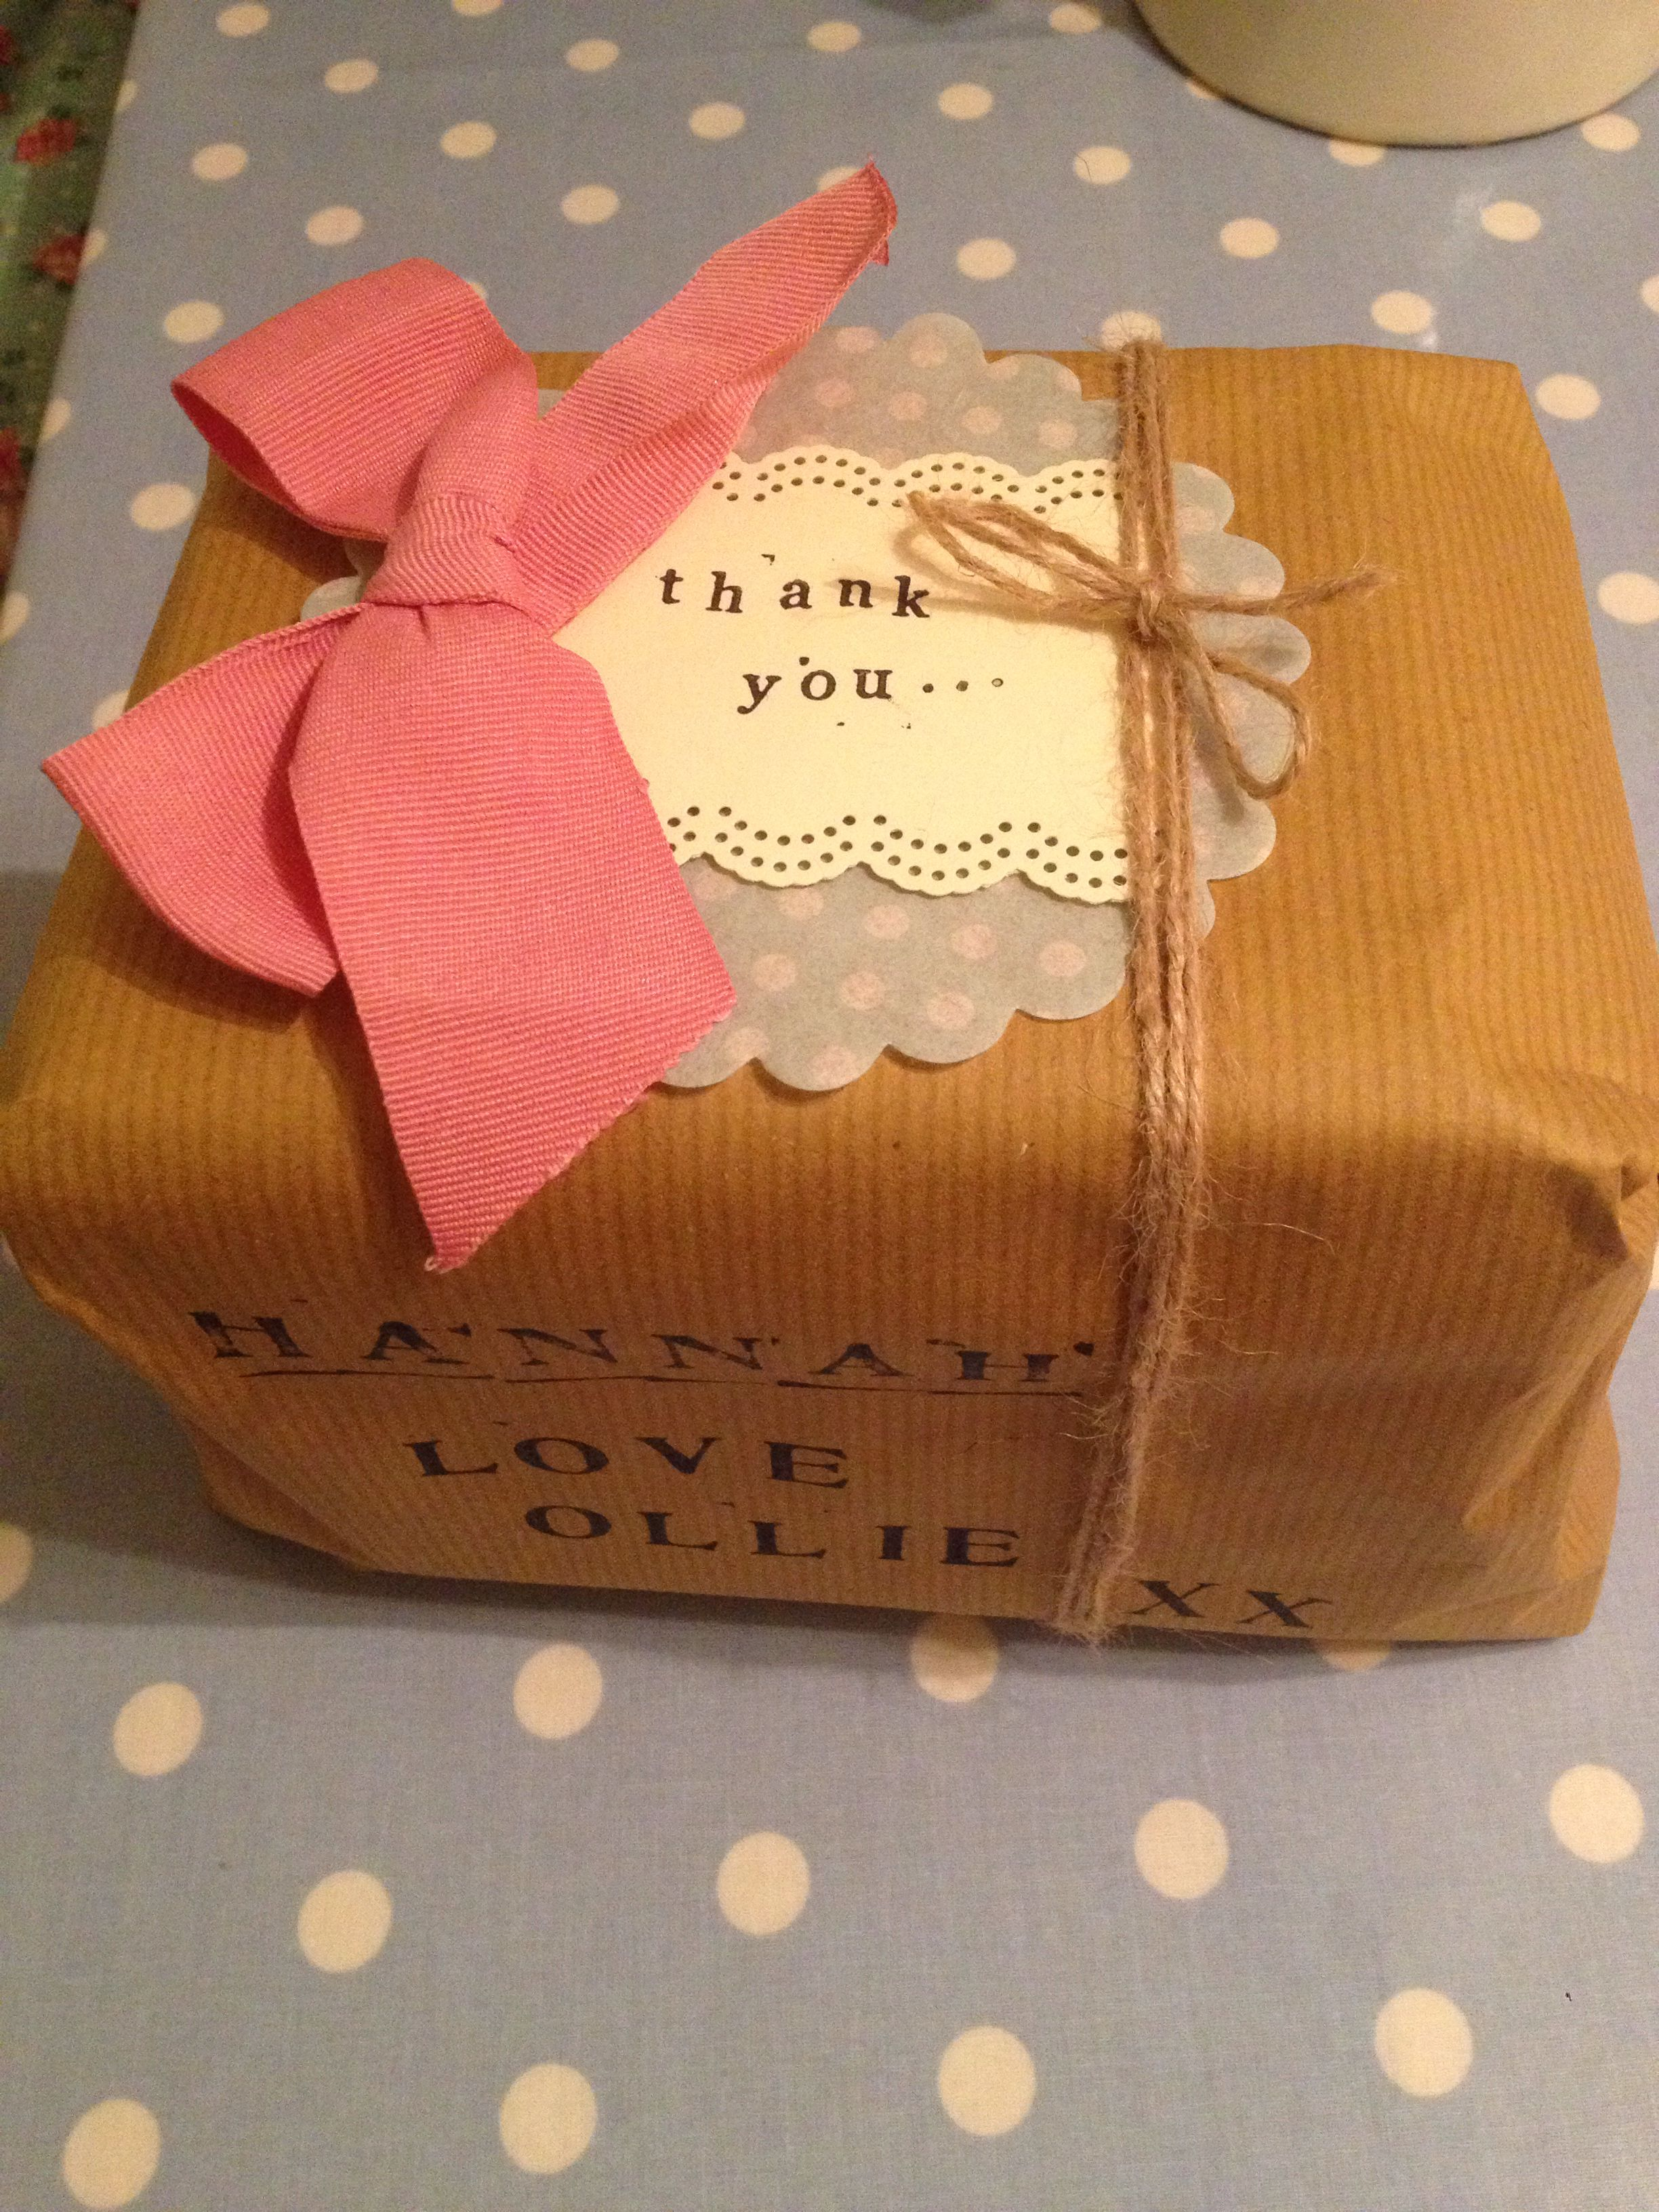 Thank you gift wrapping Sweet gift ideas, Gift wrapping